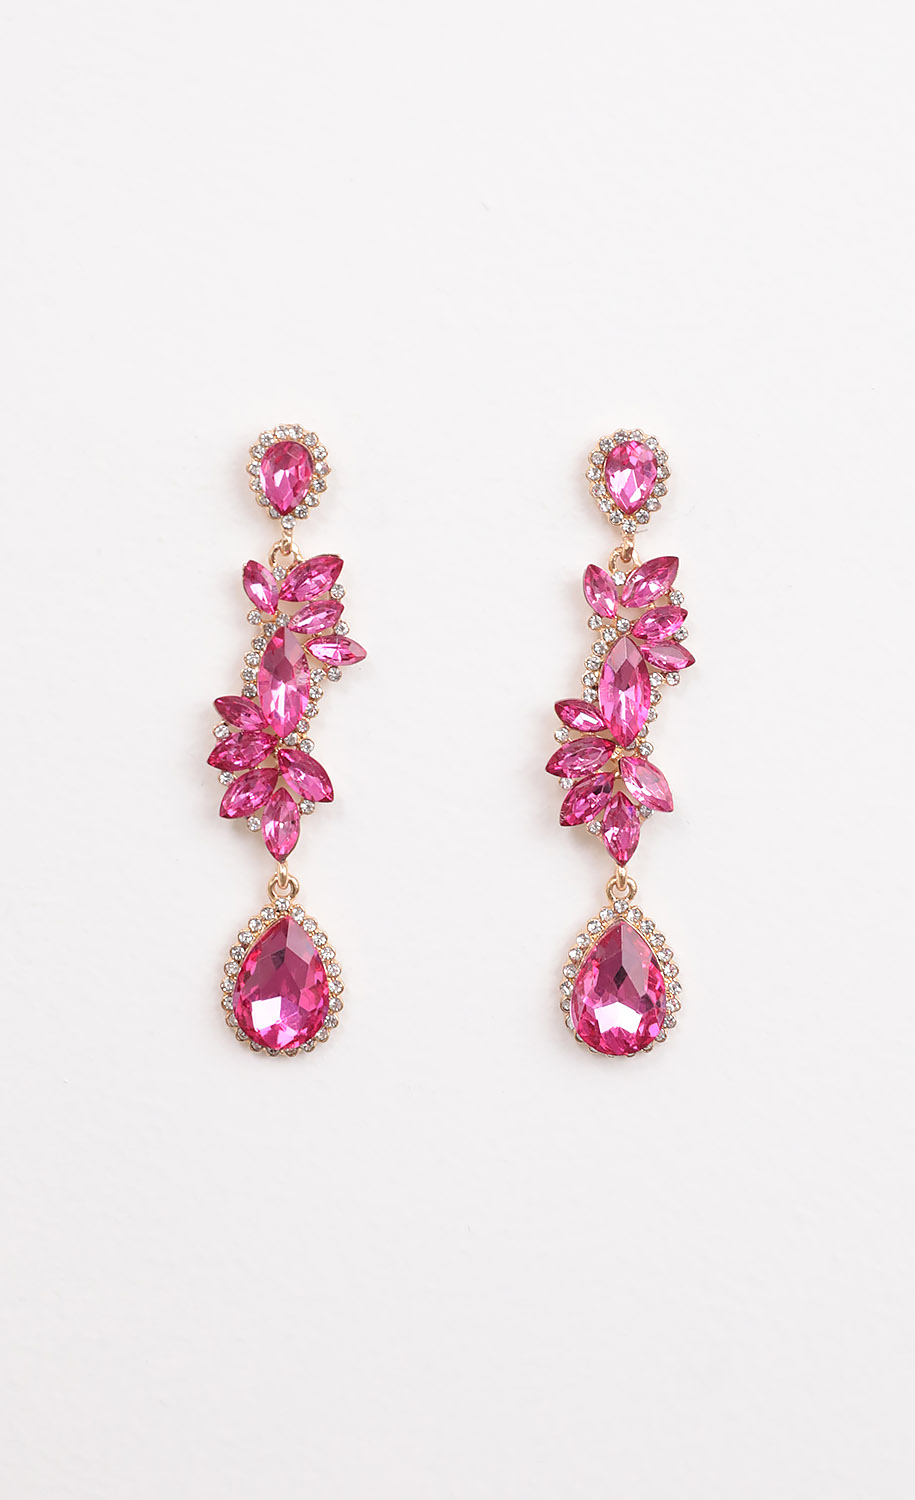 Pink and White Crystal Drop Earrings